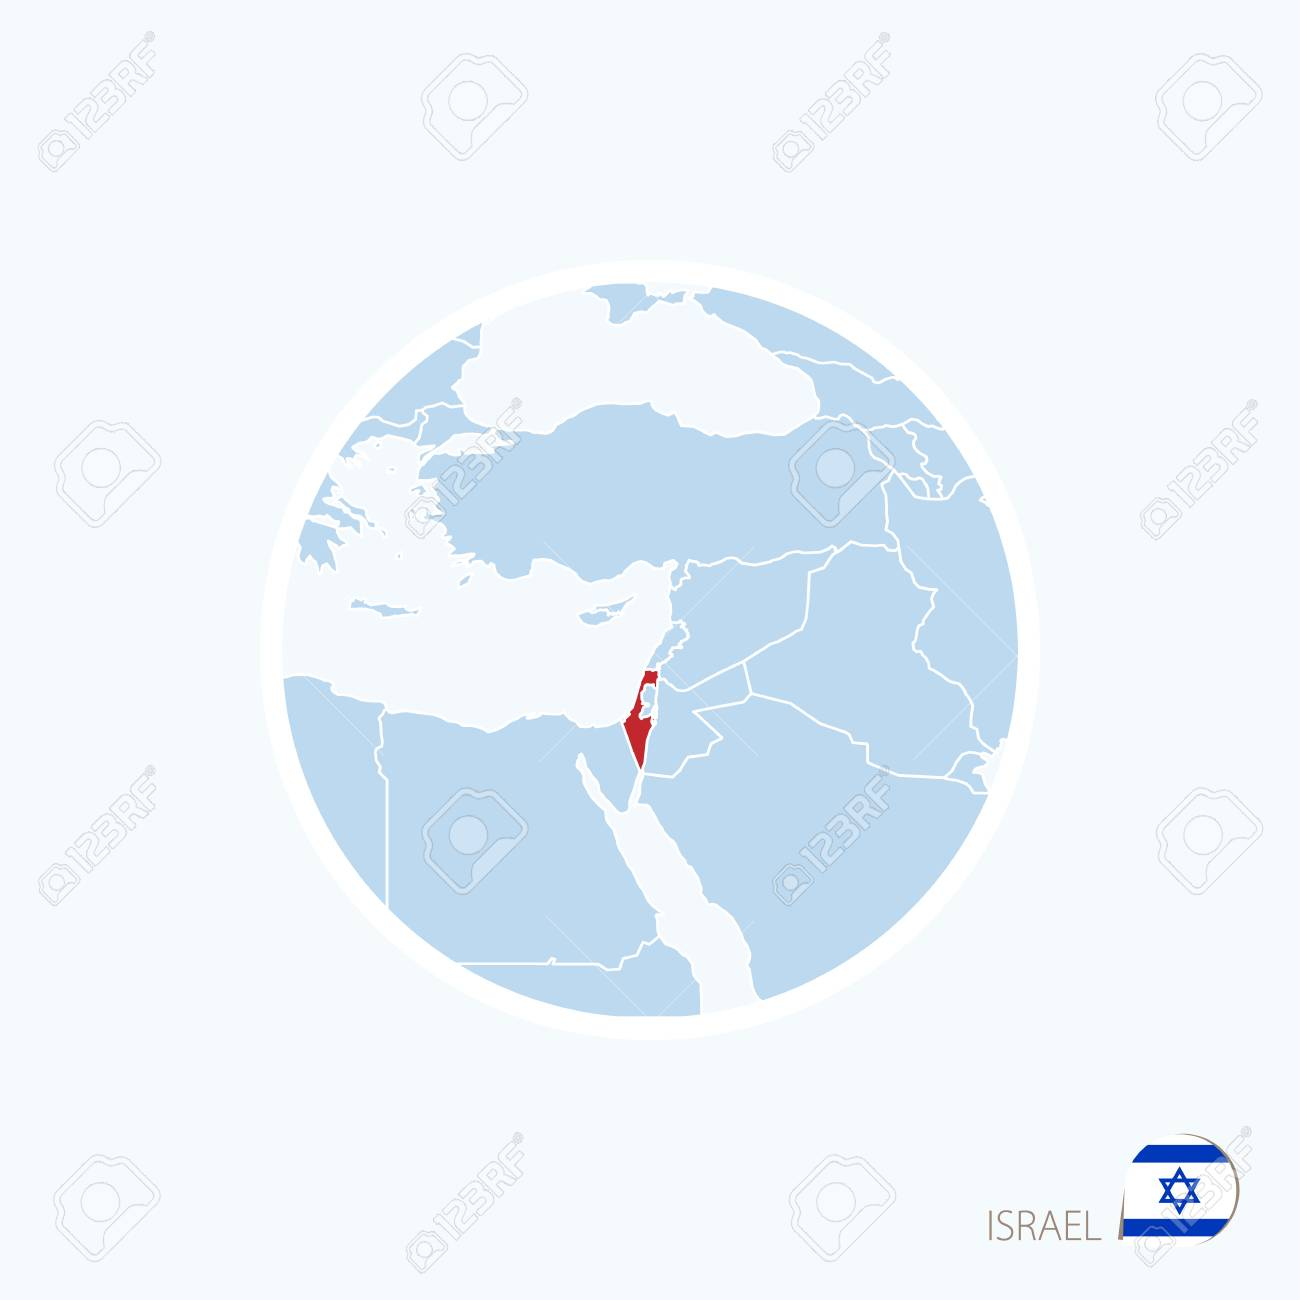 Map icon of israel blue map of middle east with highlighted map icon of israel blue map of middle east with highlighted israel in red color gumiabroncs Choice Image